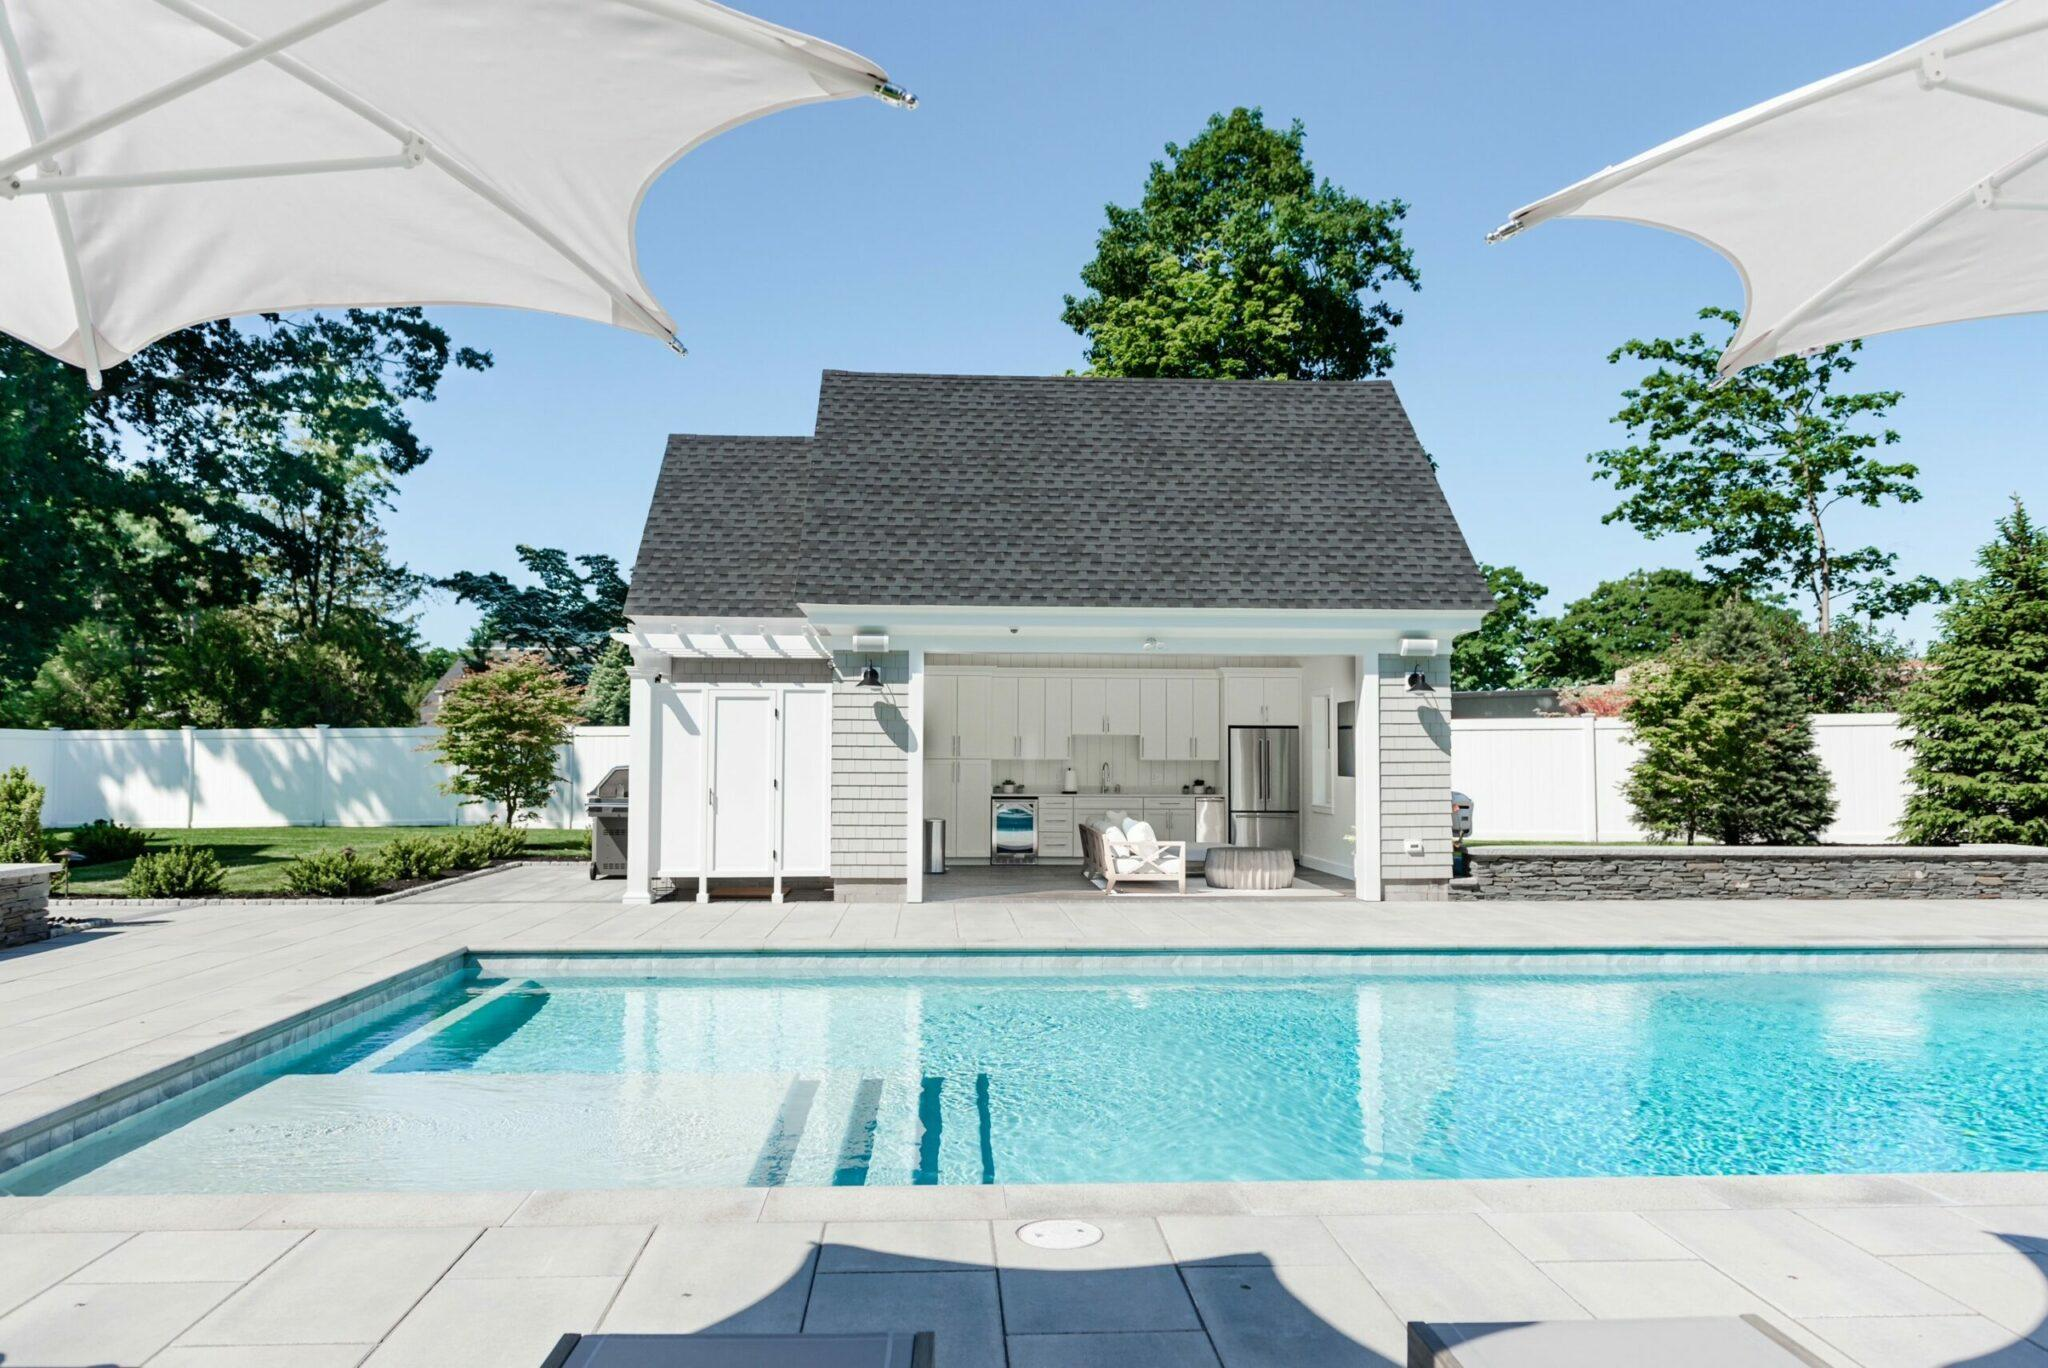 inground pool with pool house